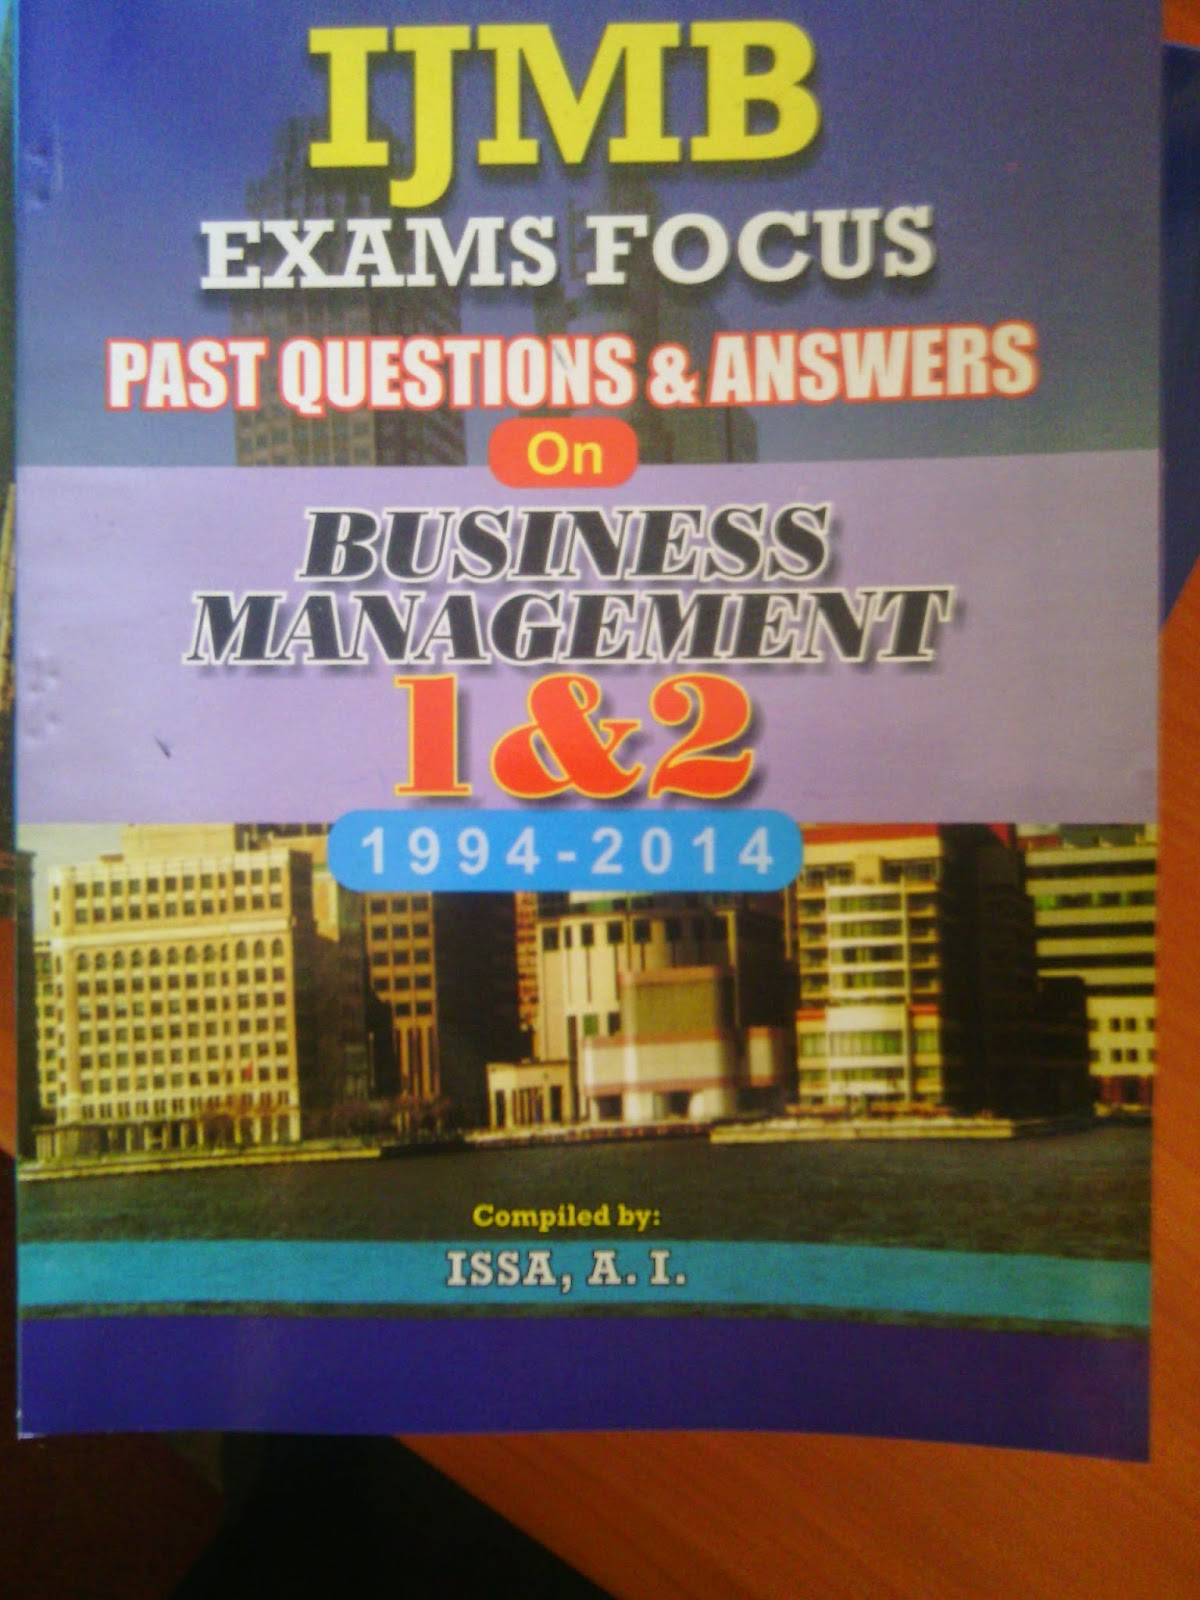 IJMB Textbook and exam papers